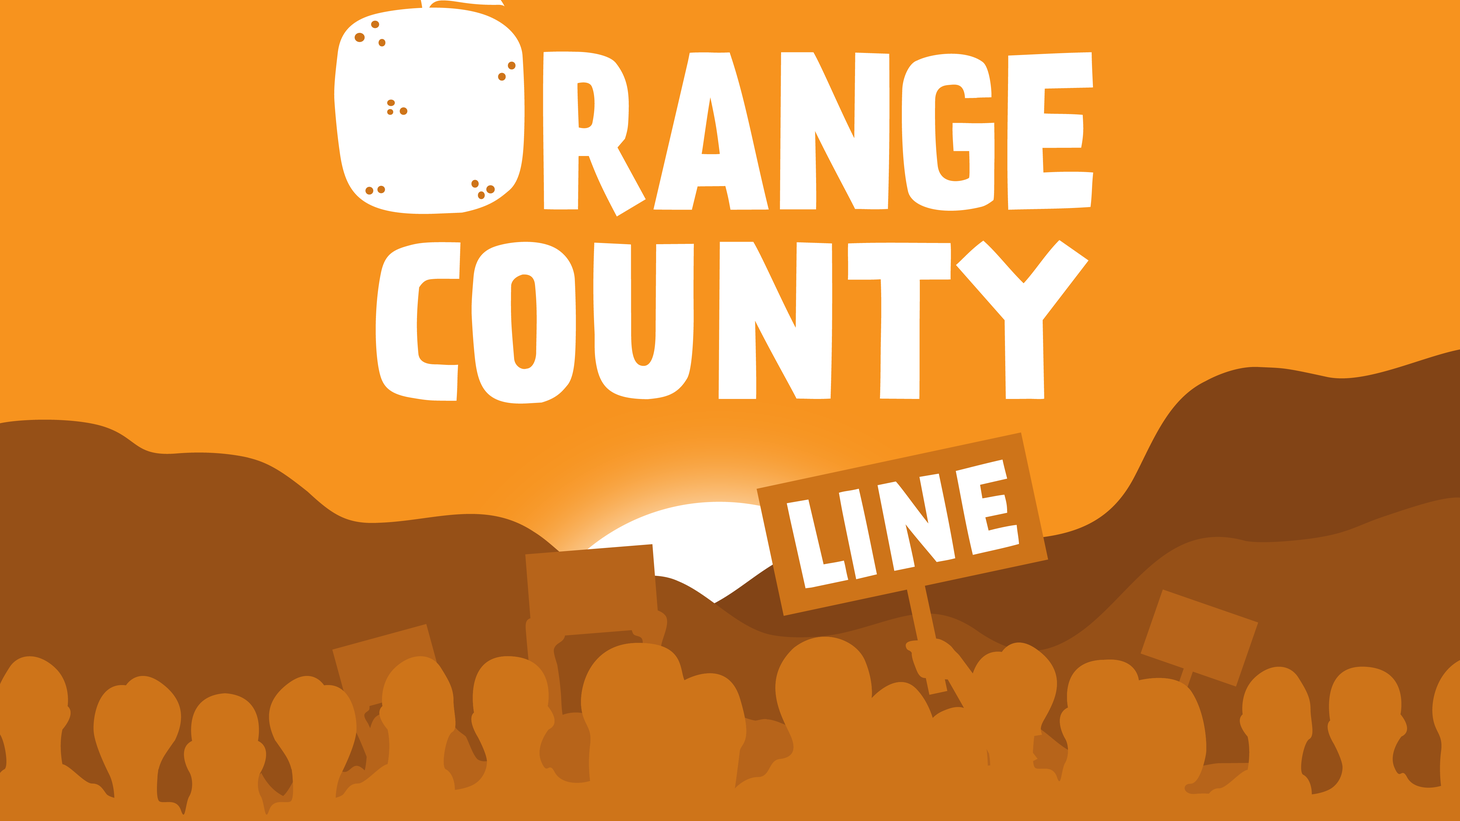 Last week, the Orange County Grand Jury issued a report blasting OC Animal Care, a division of the county government in charge of the county's main animal shelter in Orange. What's the main issue behind all the problems, and will Animal Care ever be possibly reformed?